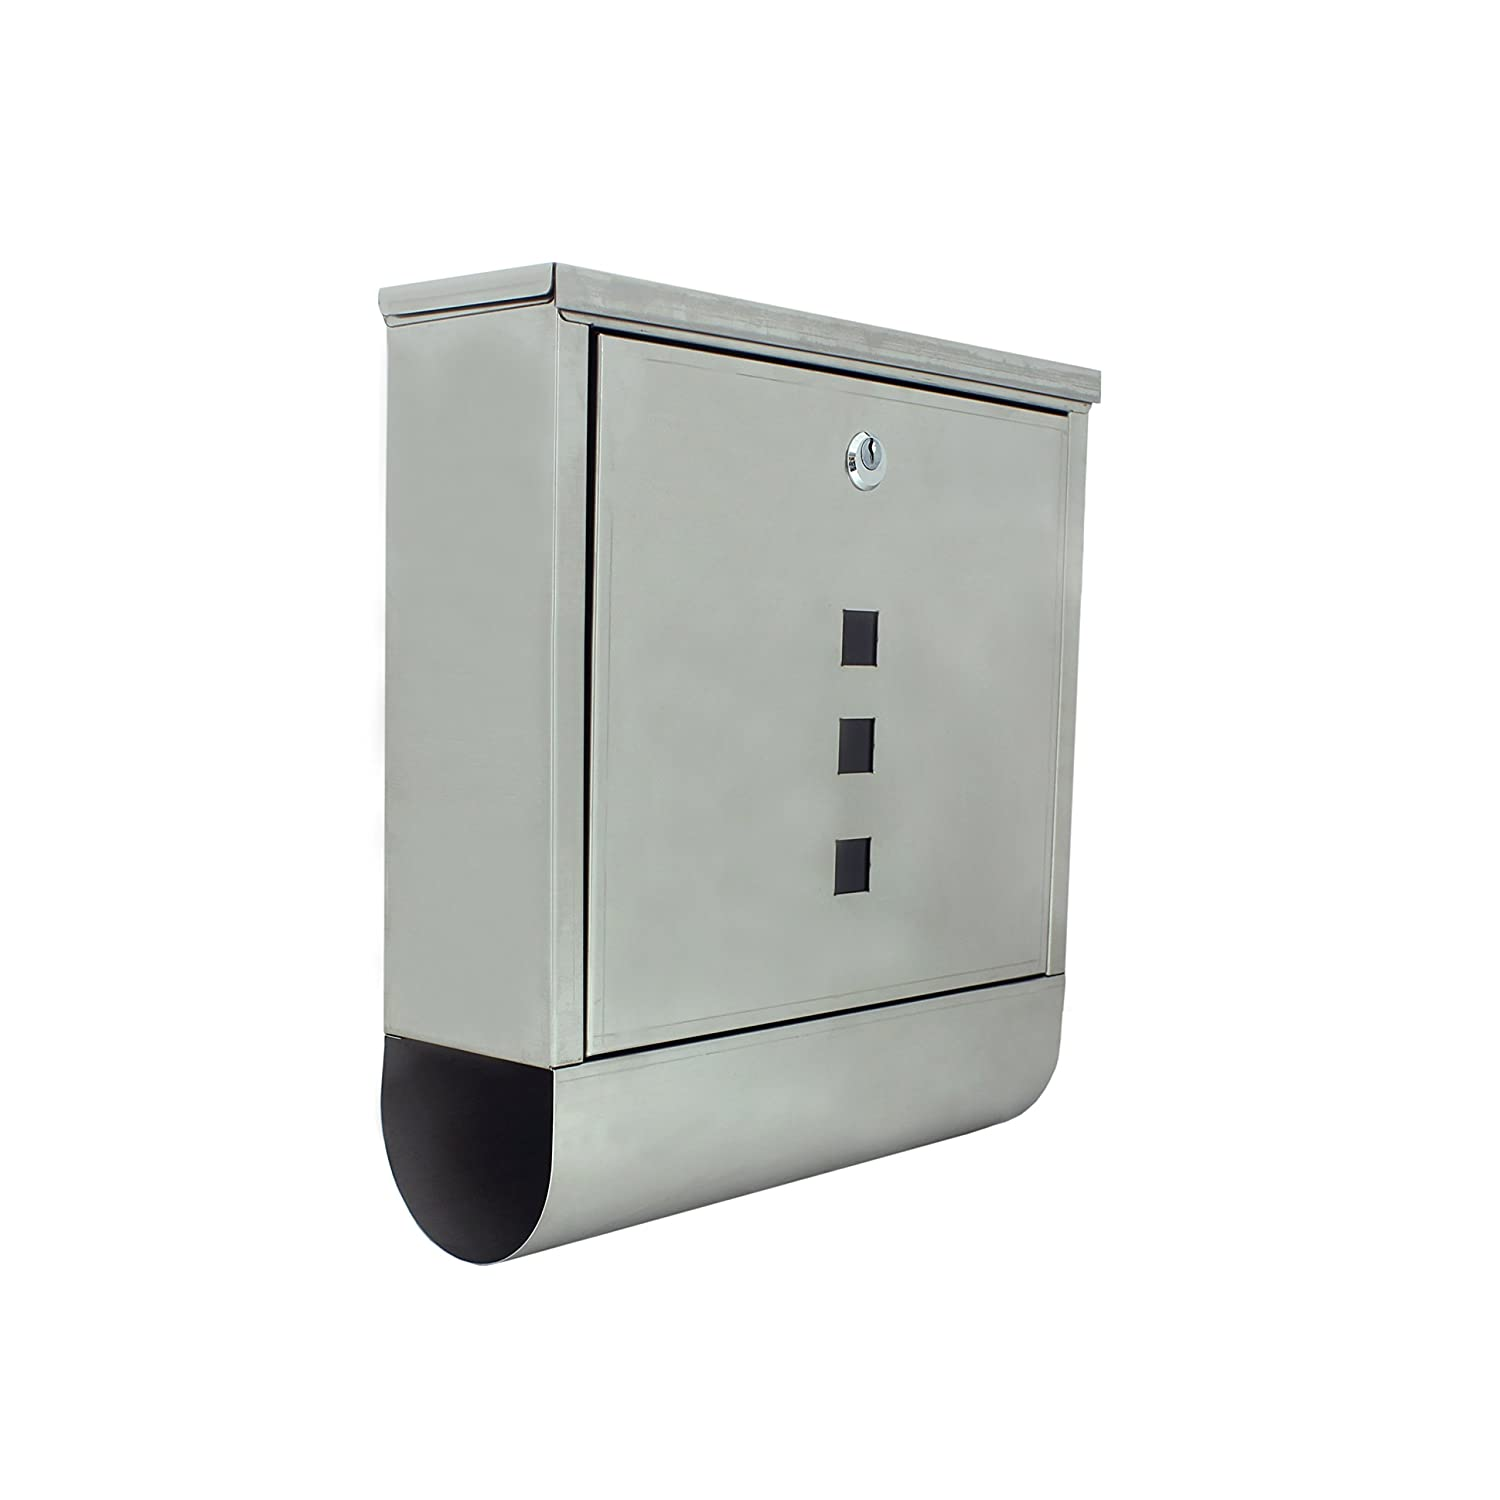 Mailbox stainless steel locking mail box letterbox postal box modern - Aleko Usmb 03 Wall Mounted Mail Box With Retrieval Door 2 Keys And Newspaper Compartment